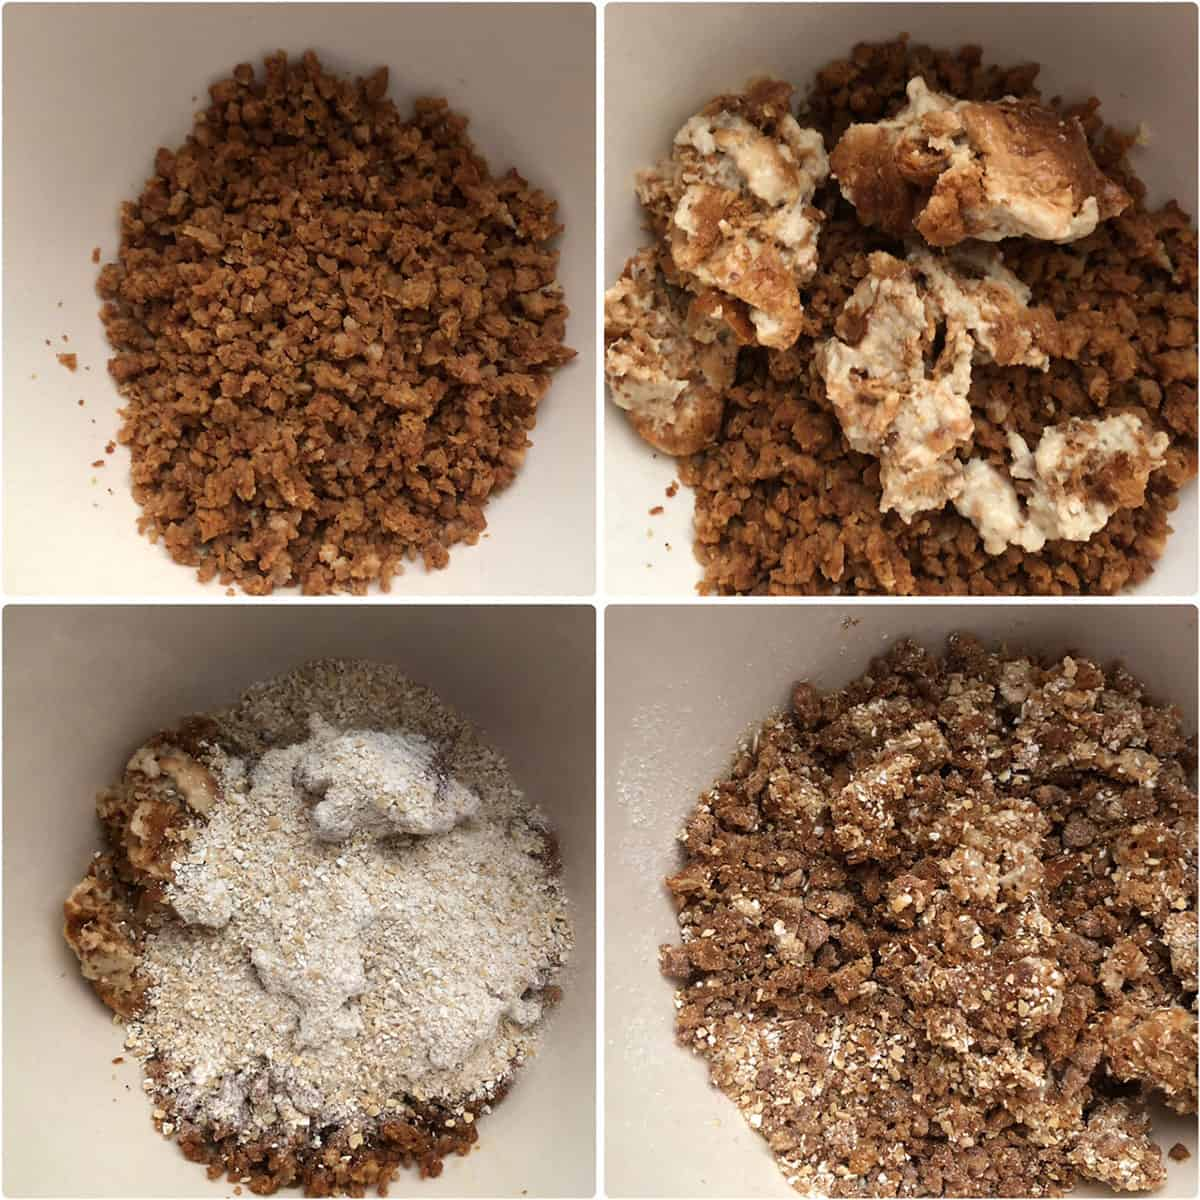 Meatless crumbles - adding soaked bread, oat flour and mixed together